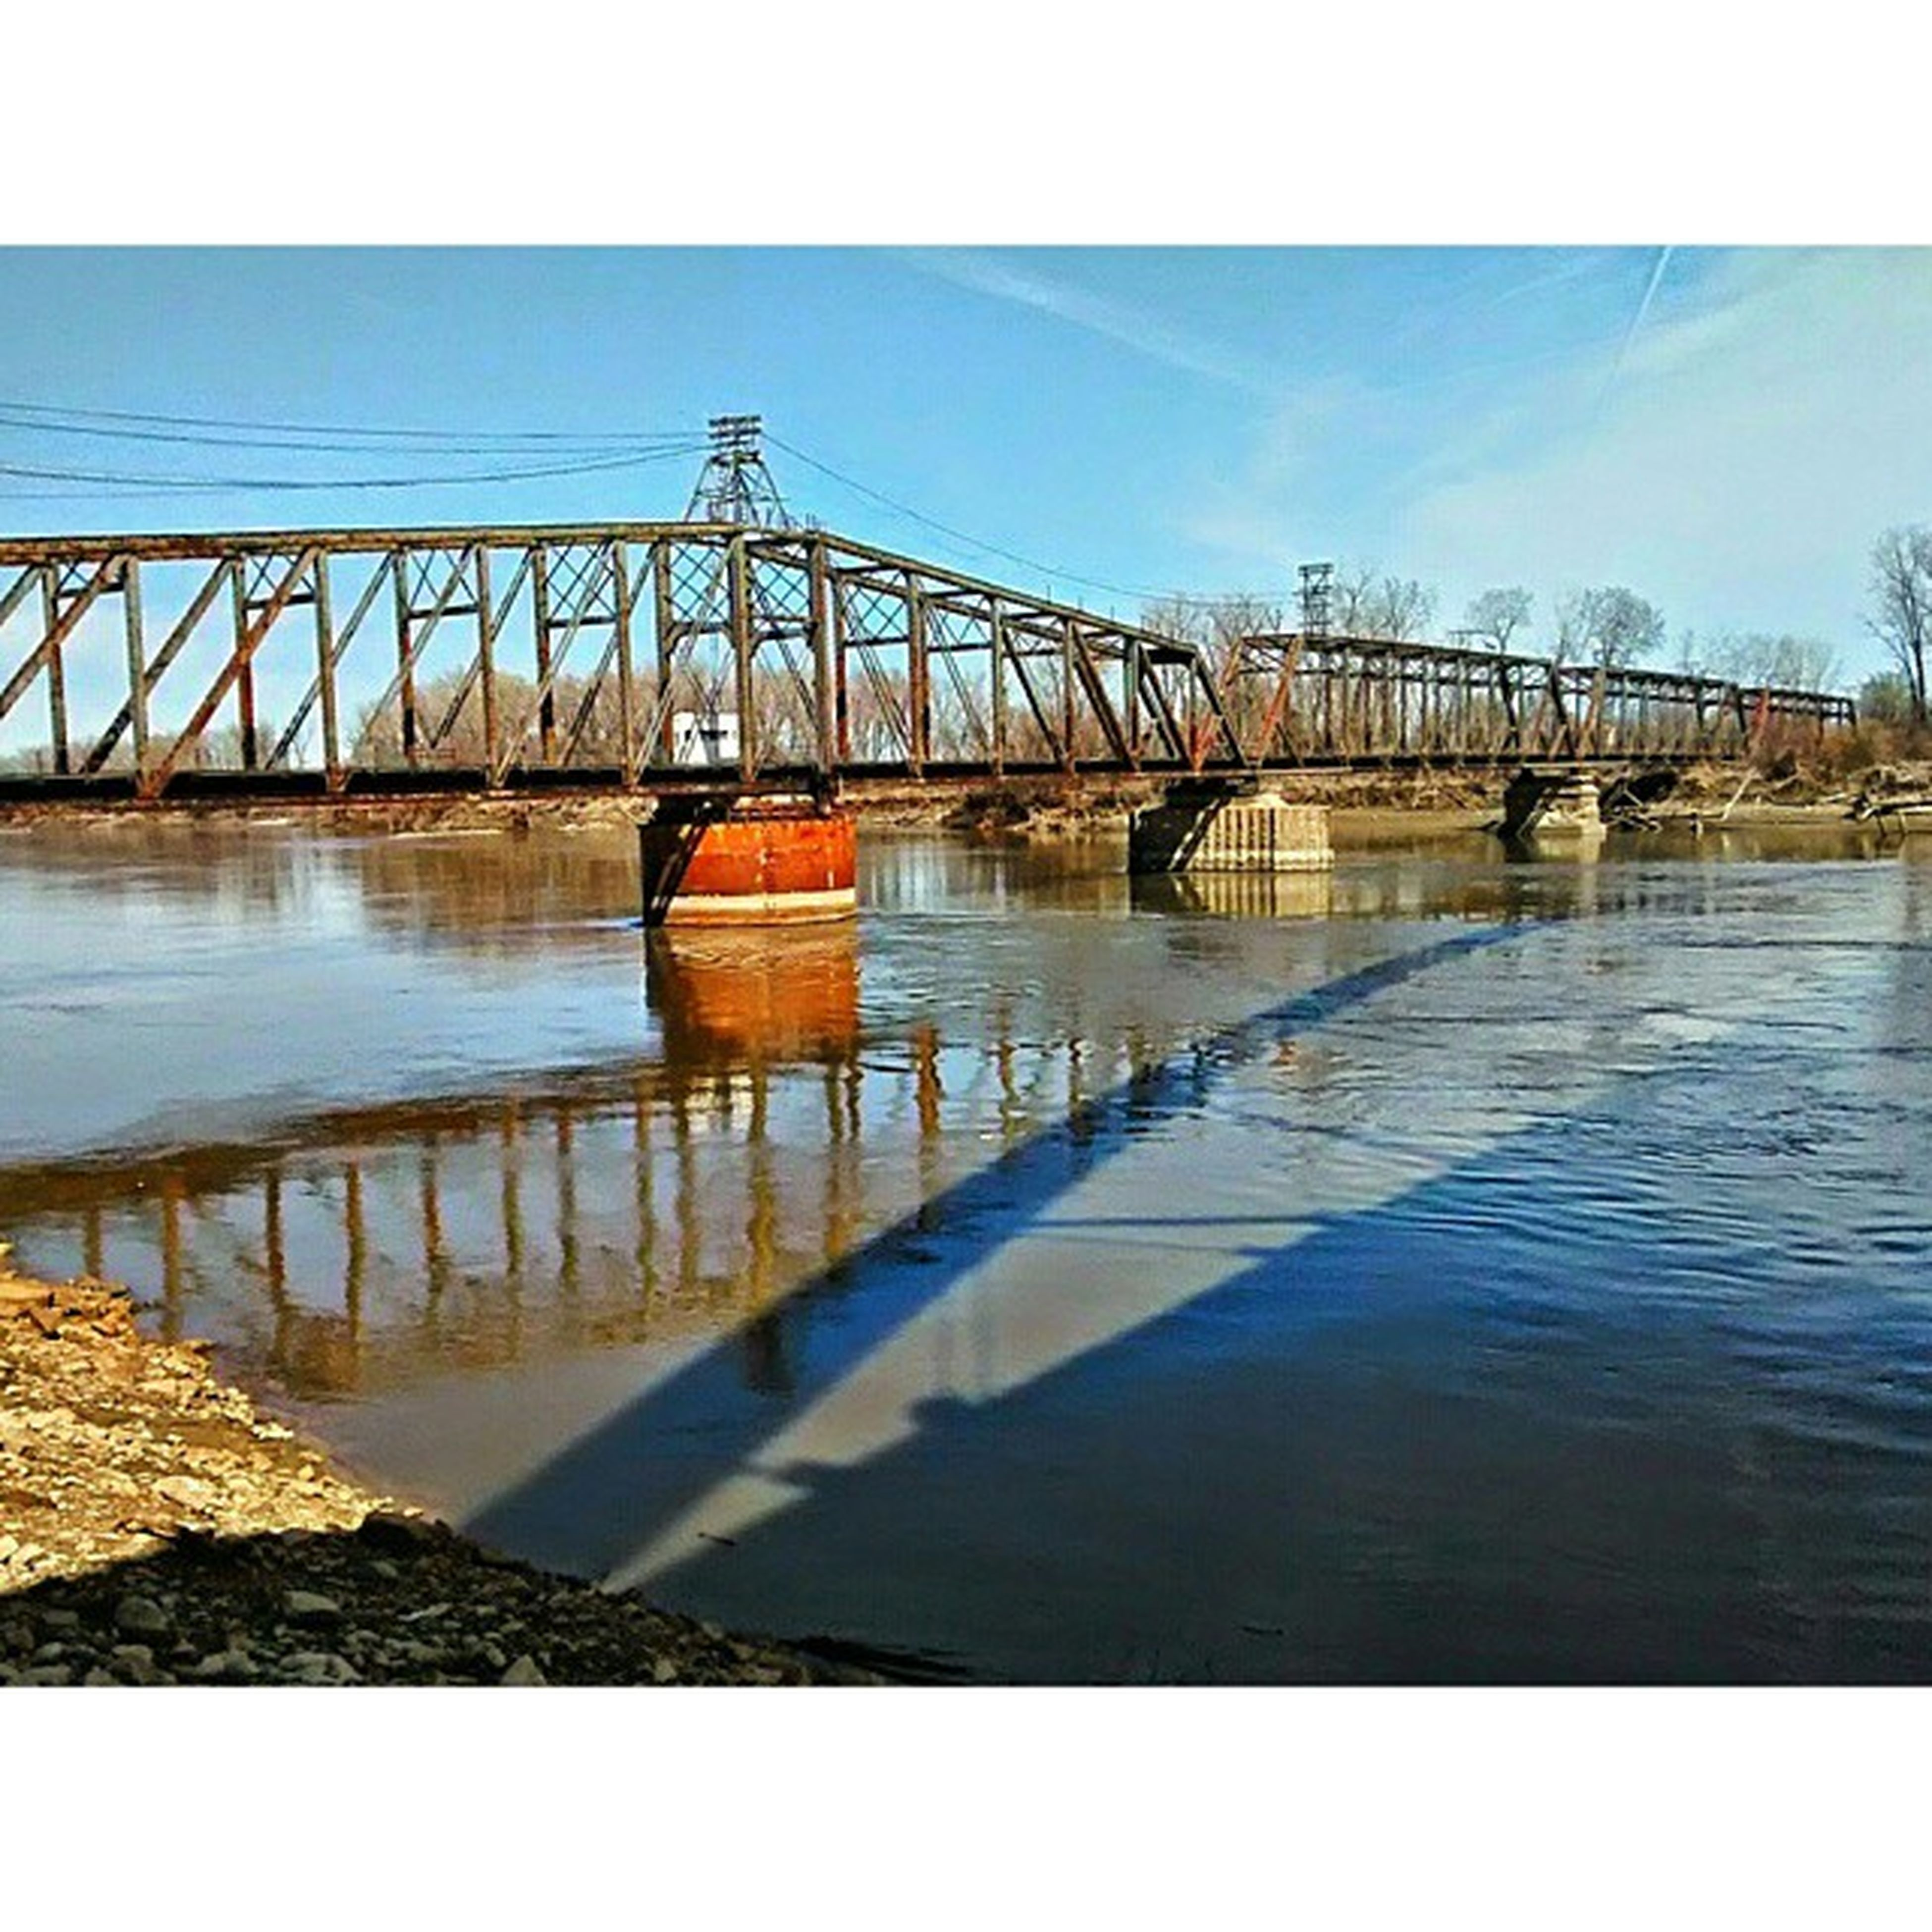 water, connection, bridge - man made structure, built structure, architecture, river, bridge, sky, engineering, railing, transportation, blue, long, waterfront, diminishing perspective, outdoors, clear sky, the way forward, transfer print, rippled